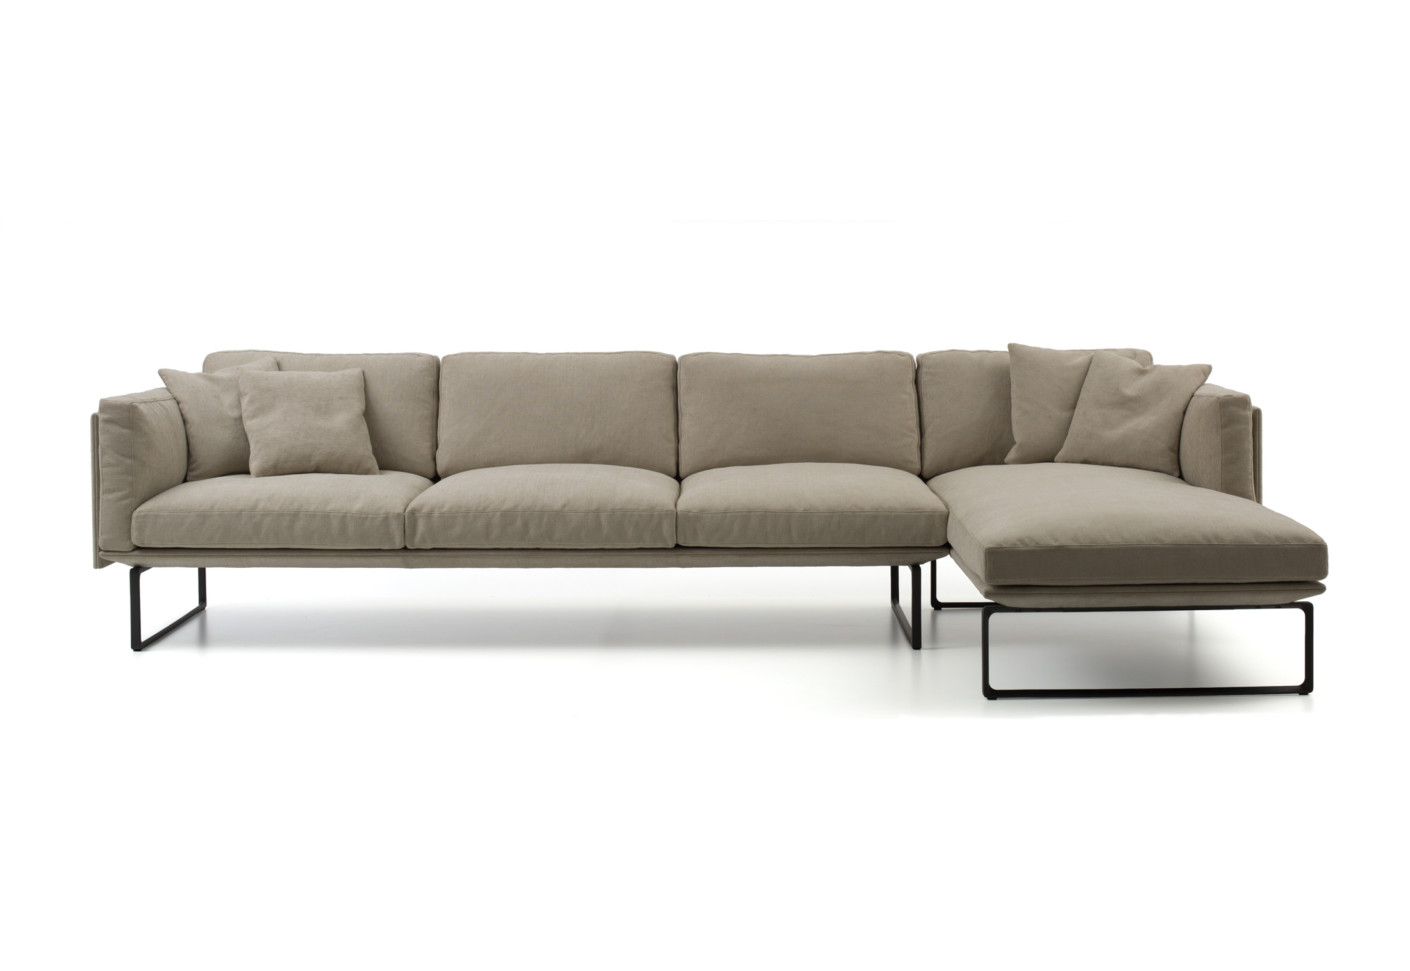 8 sofa by cassina stylepark for Edit 03 sofa